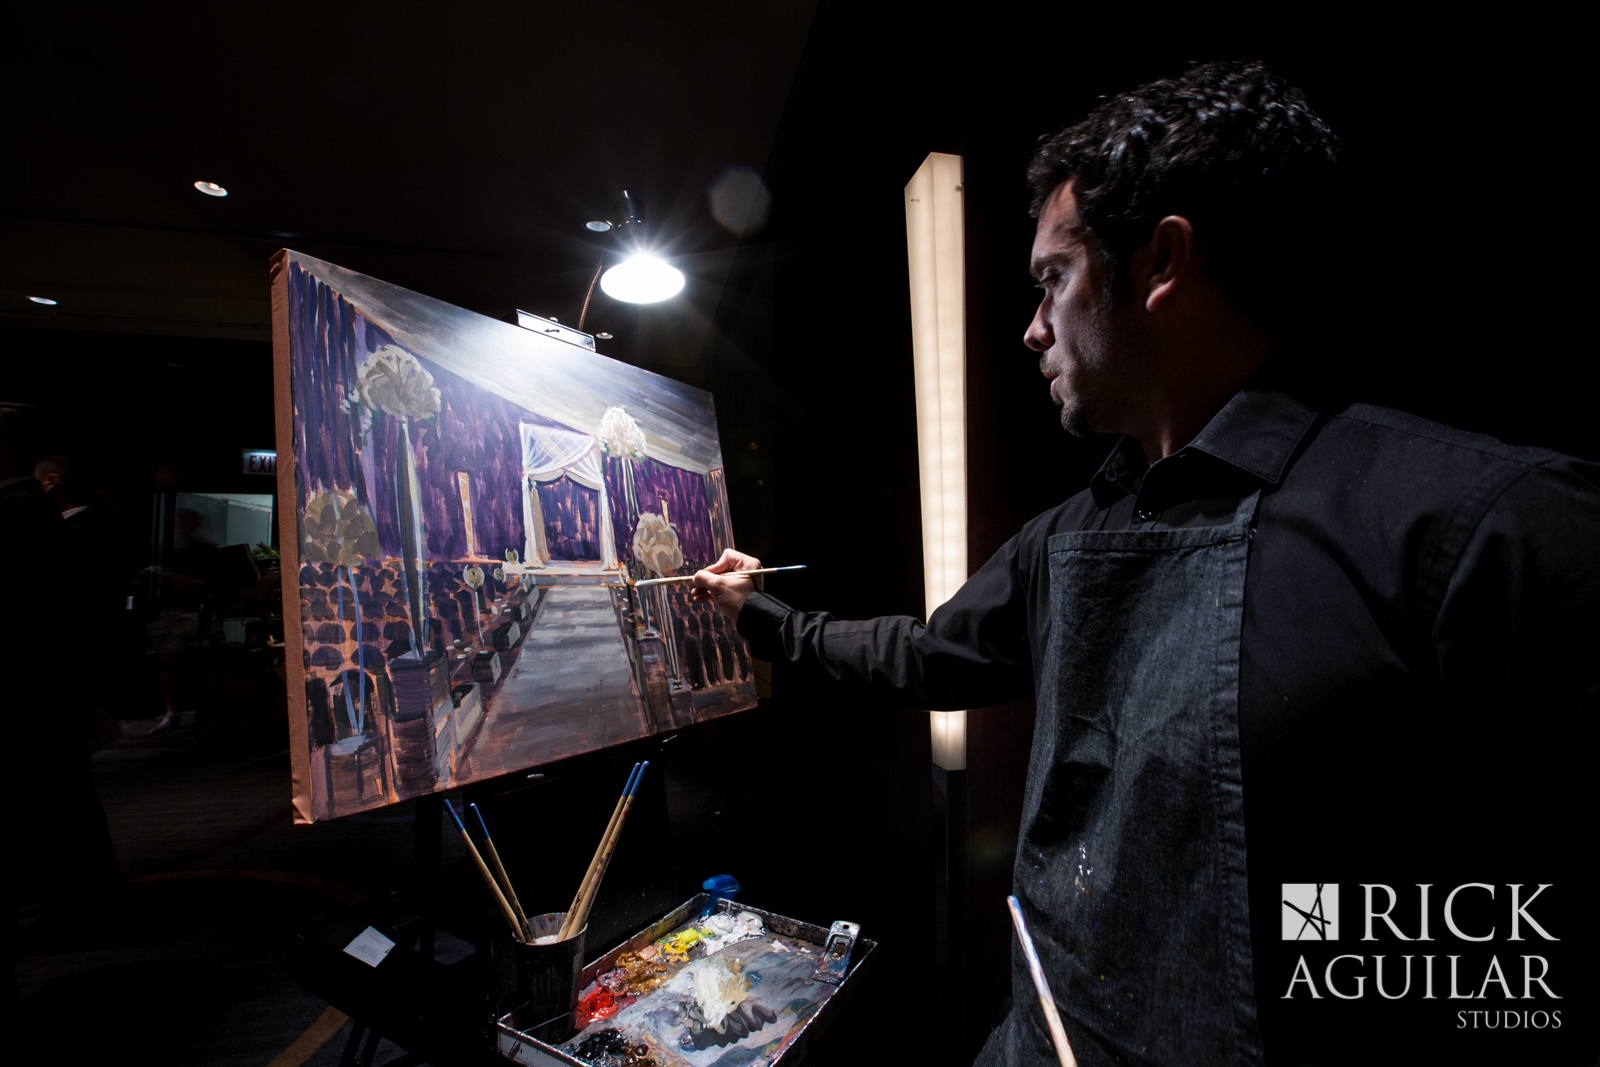 wedding-painter-ben-keys-live-wedding-artist-of-wed-on-canvas-art-wedding-chicago-charleston-miami